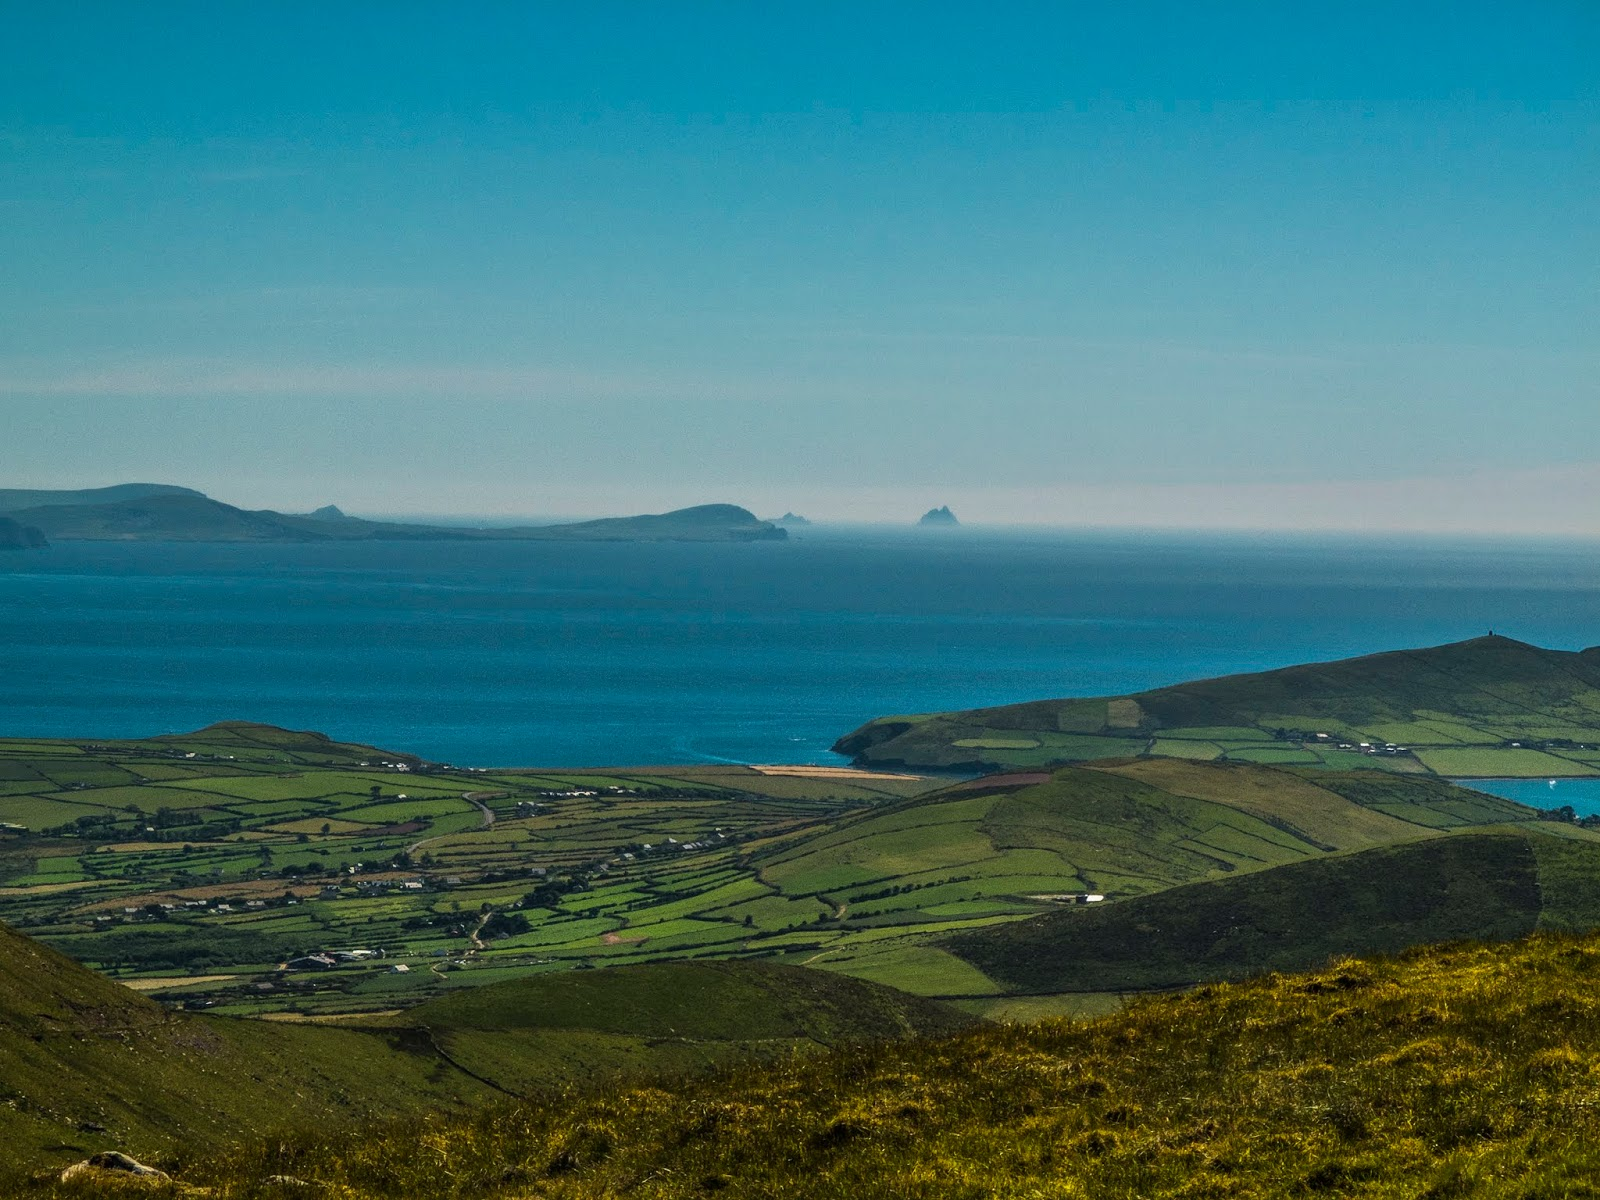 View of the Iveragh Peninsula and the Skellig Islands from Conor Pass.